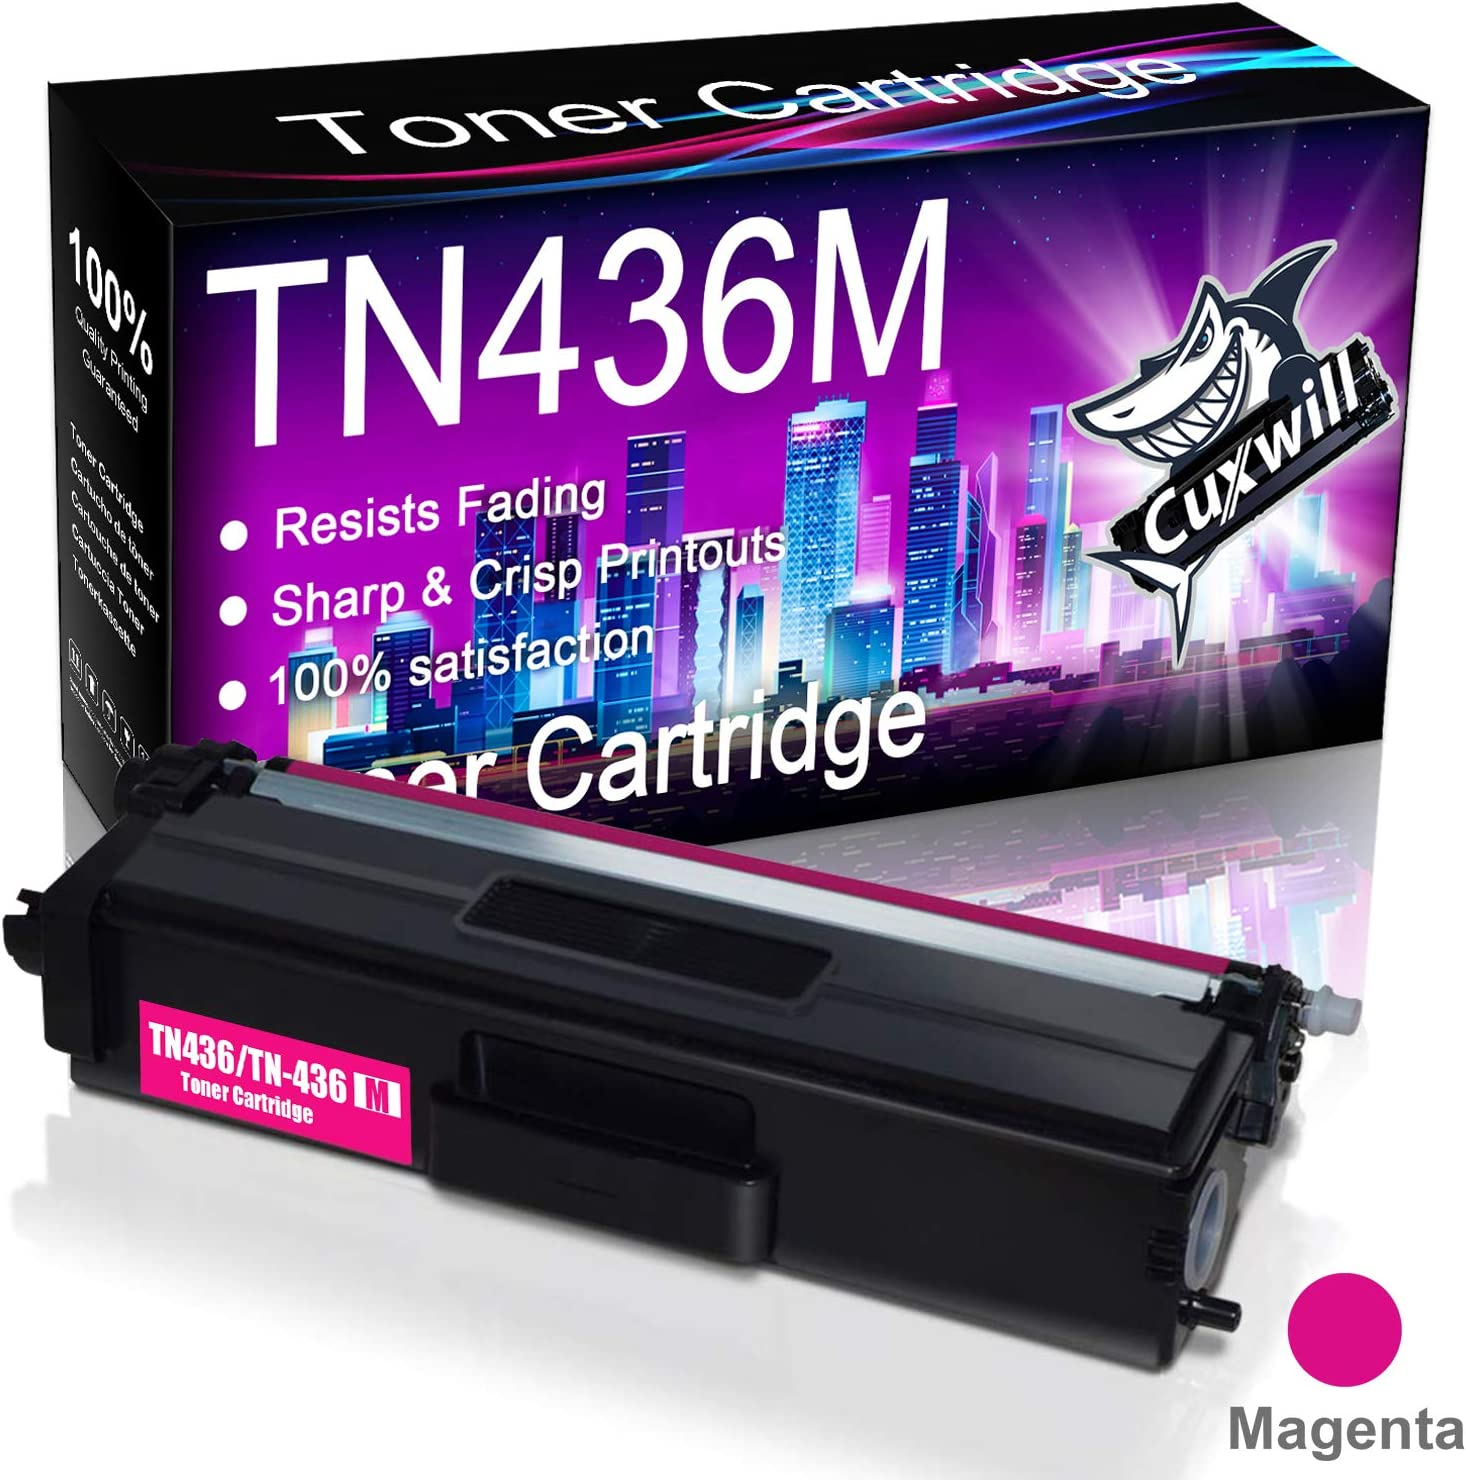 Magenta Replacement for Brother TN431 TN431M Printer Toner High Capacity Compatible HL-L8260CDW HL-L8360CDW HL-L8360CDWT MFC-L8610CDW MFC-L8900CDW Laser Printer Toner Cartridge 2-Pack